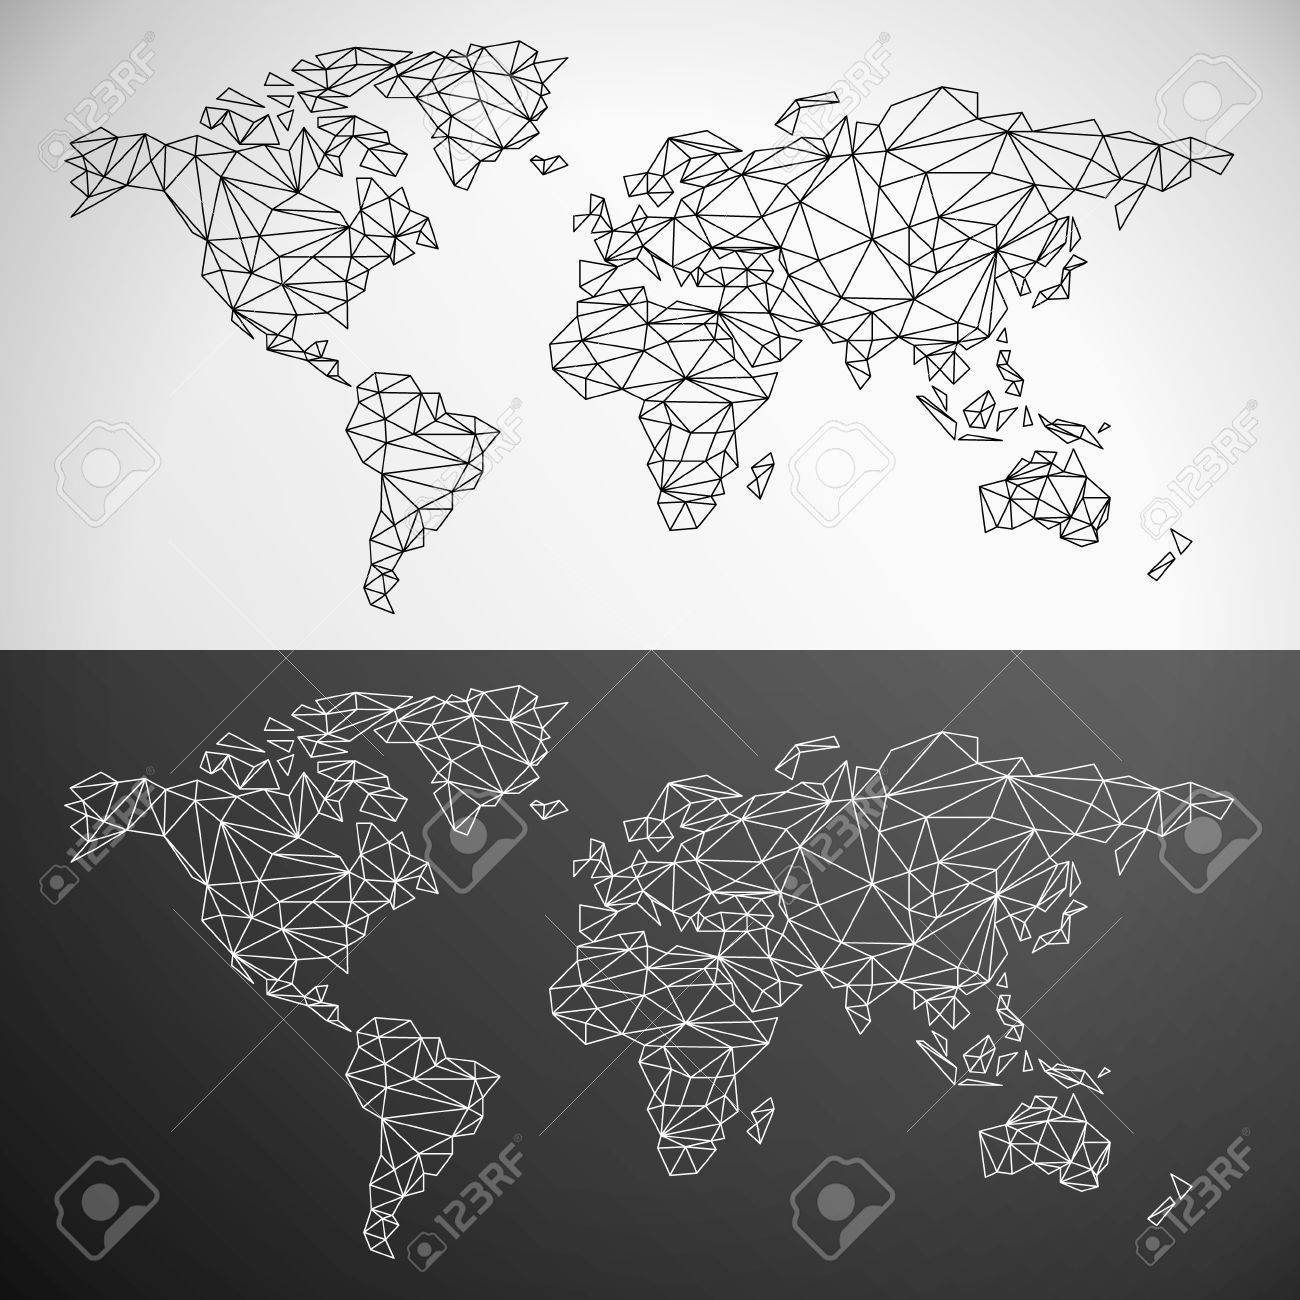 Vector low poly world map outline royalty free cliparts vectors vector low poly world map outline stock vector 36984628 gumiabroncs Gallery